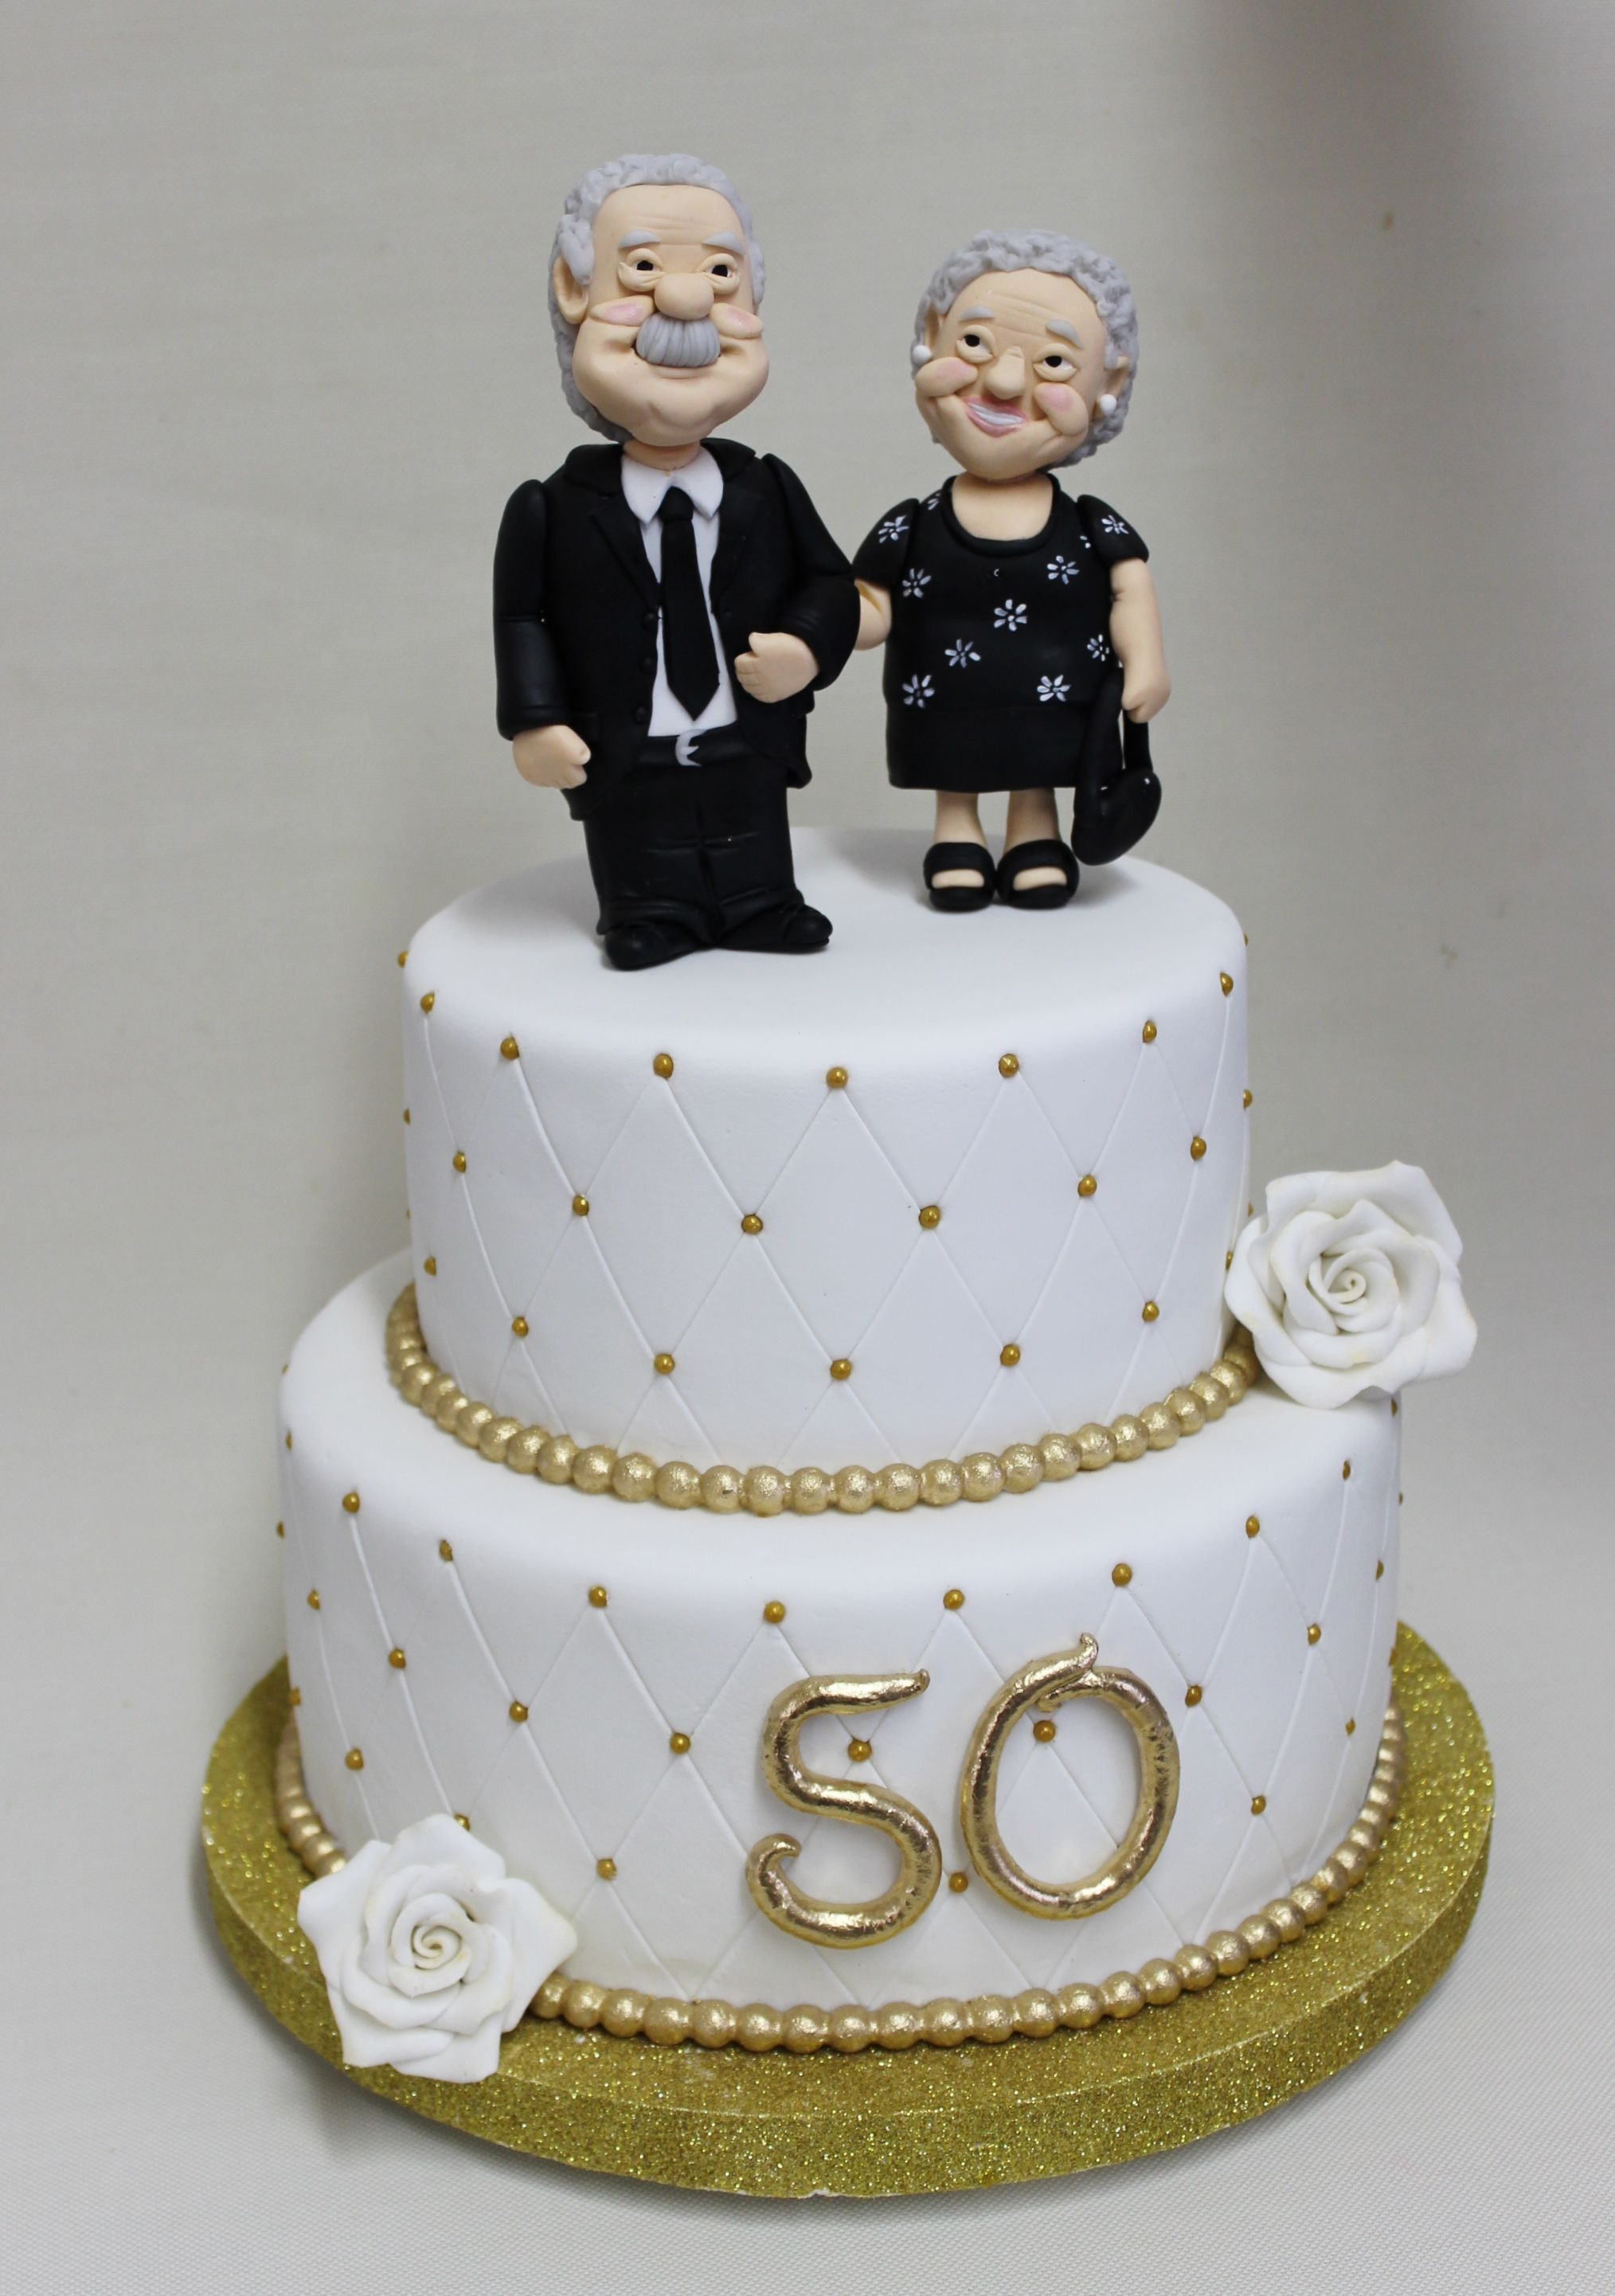 Bodas de Oro Cake | Tortas | Pinterest | Anniversaries, 50th and Cake